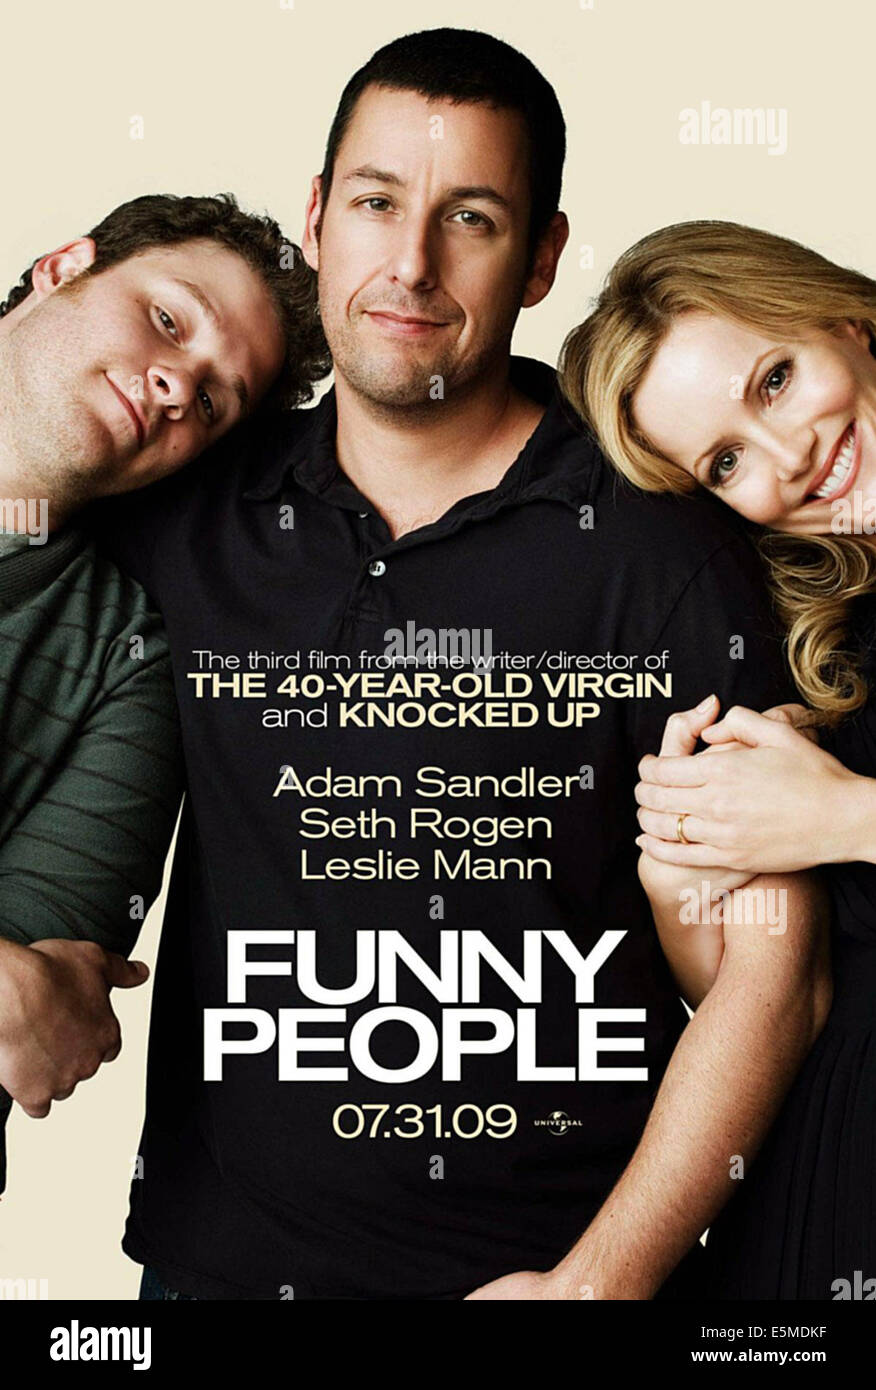 FUNNY PEOPLE, from left: Seth Rogen, Adam Sandler, Leslie Mann, 2009. ©Universal/courtesy Everett Collection - Stock Image